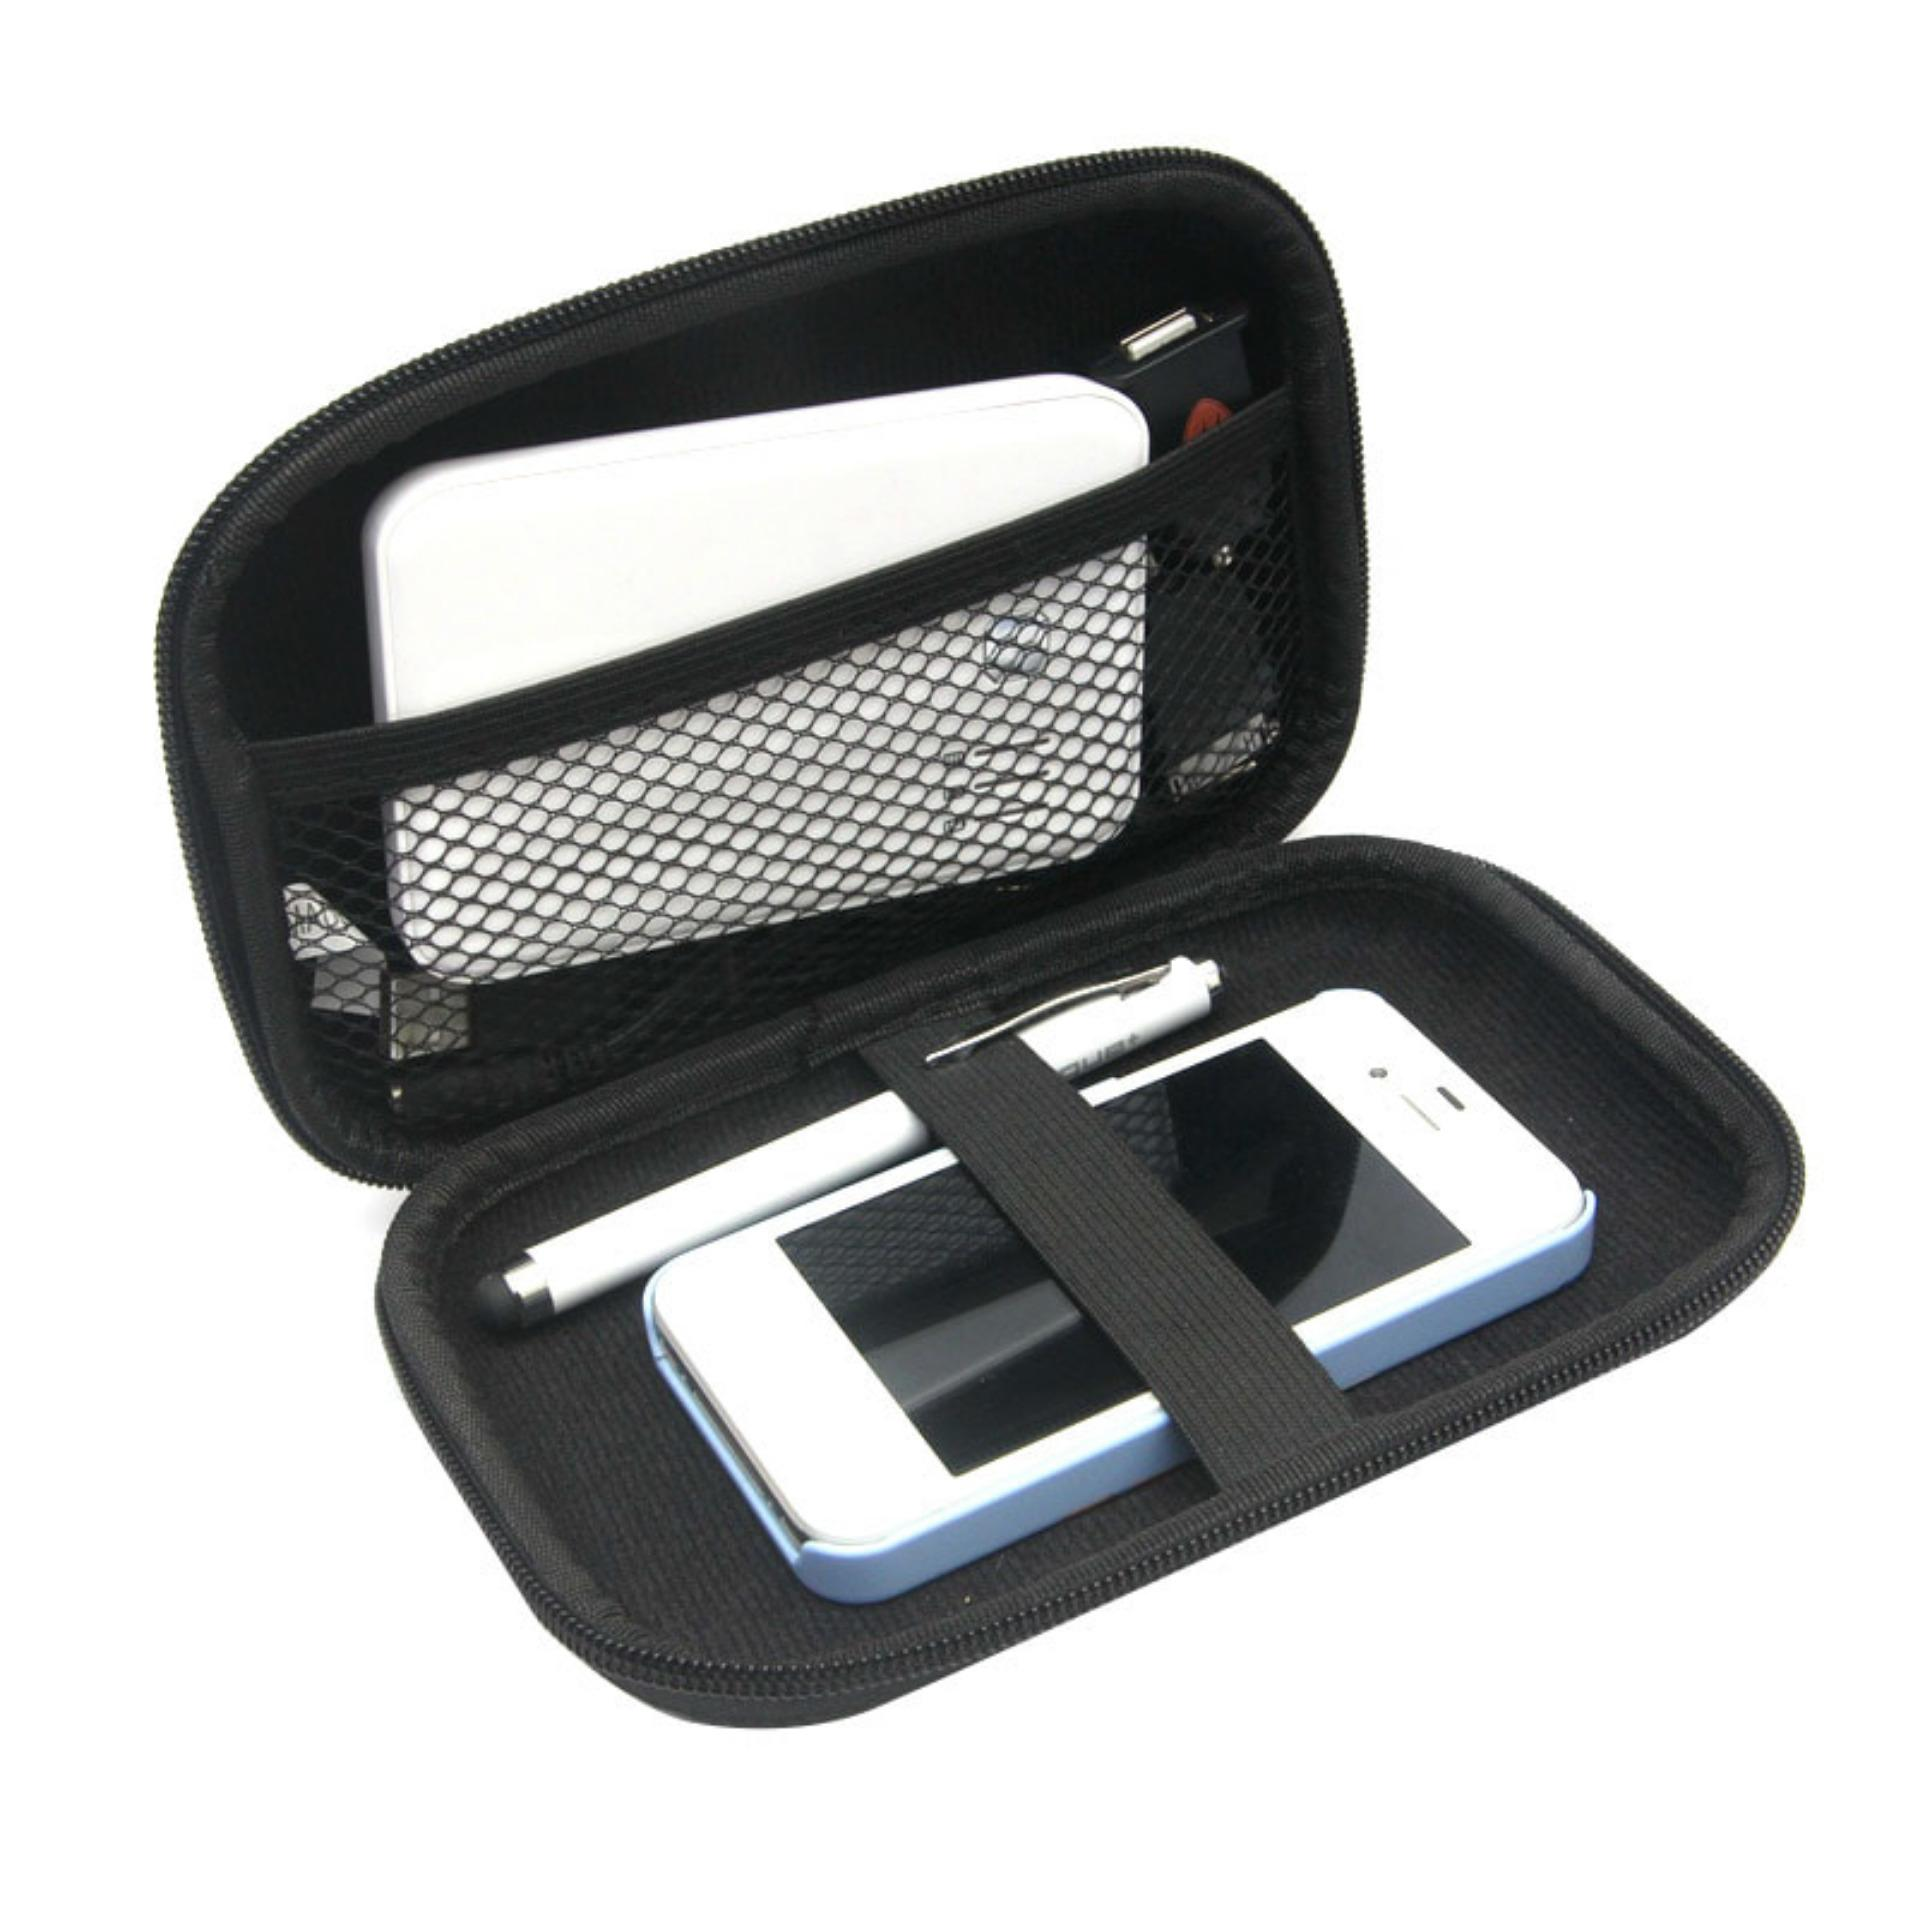 Unique Dompet Sarung Hard Disk- Hard Case Power Bank Portable Gadget / HDD Protector Hard